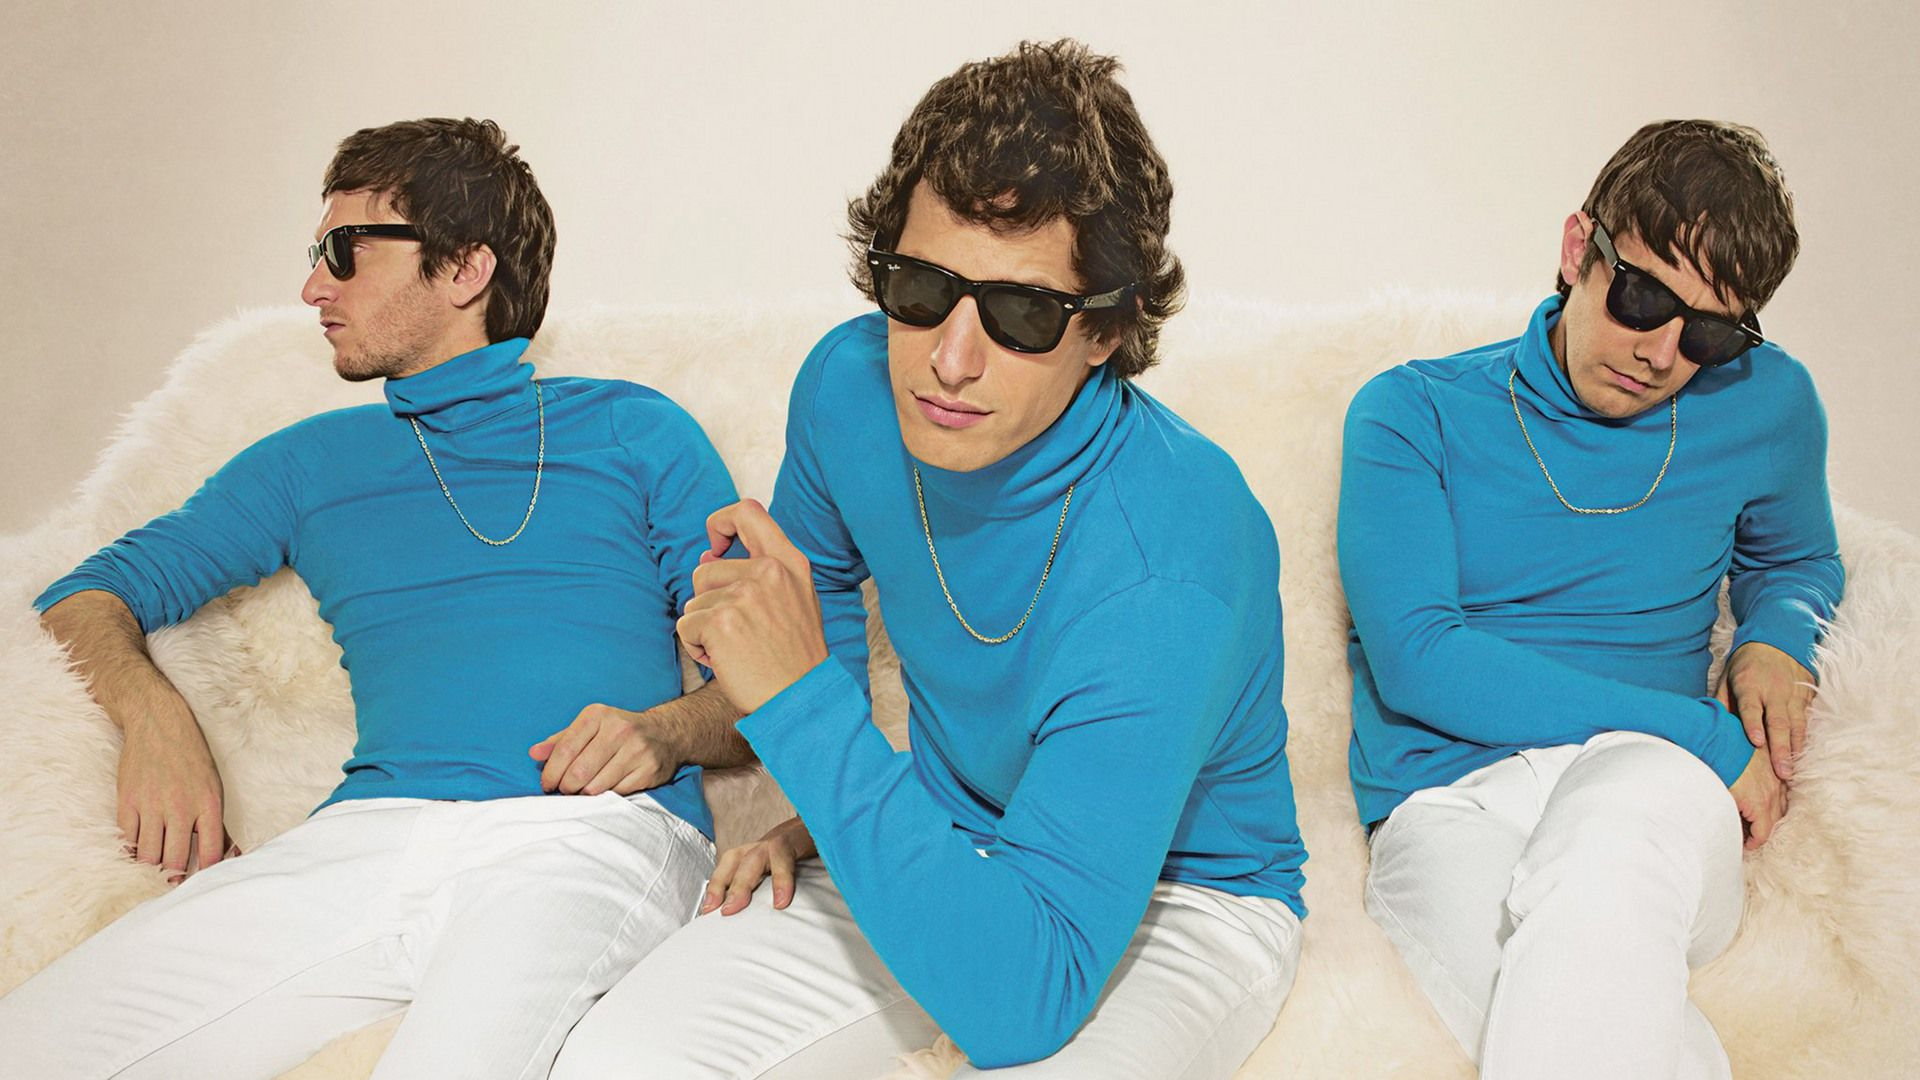 15 Life Lessons From The Lonely Island Turtle Neck Andy Samberg